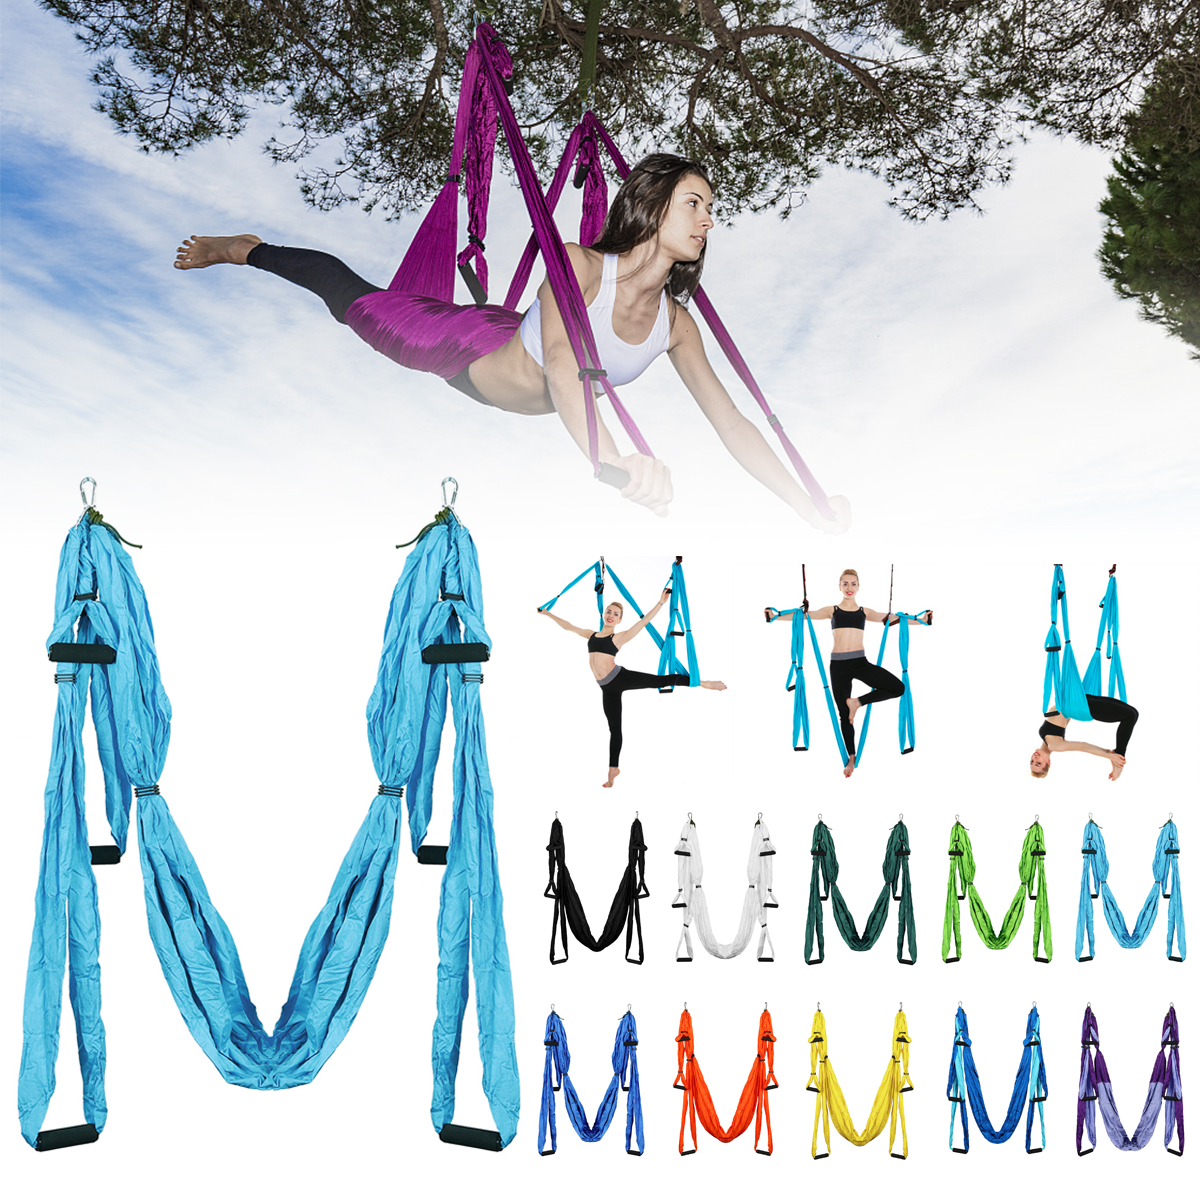 Yoga Flying Hammock Inversion Swing Anti Gravity Inversion Trapeze Aerial Sling Colors Aerial Anti-tearing Soft and Comfortable uhf rfid tag sticker alien 9654 wet inlay 915mhz 900 868mhz 860 960mhz higgs3 epcc1g2 6c smart adhesive passive rfid tags label